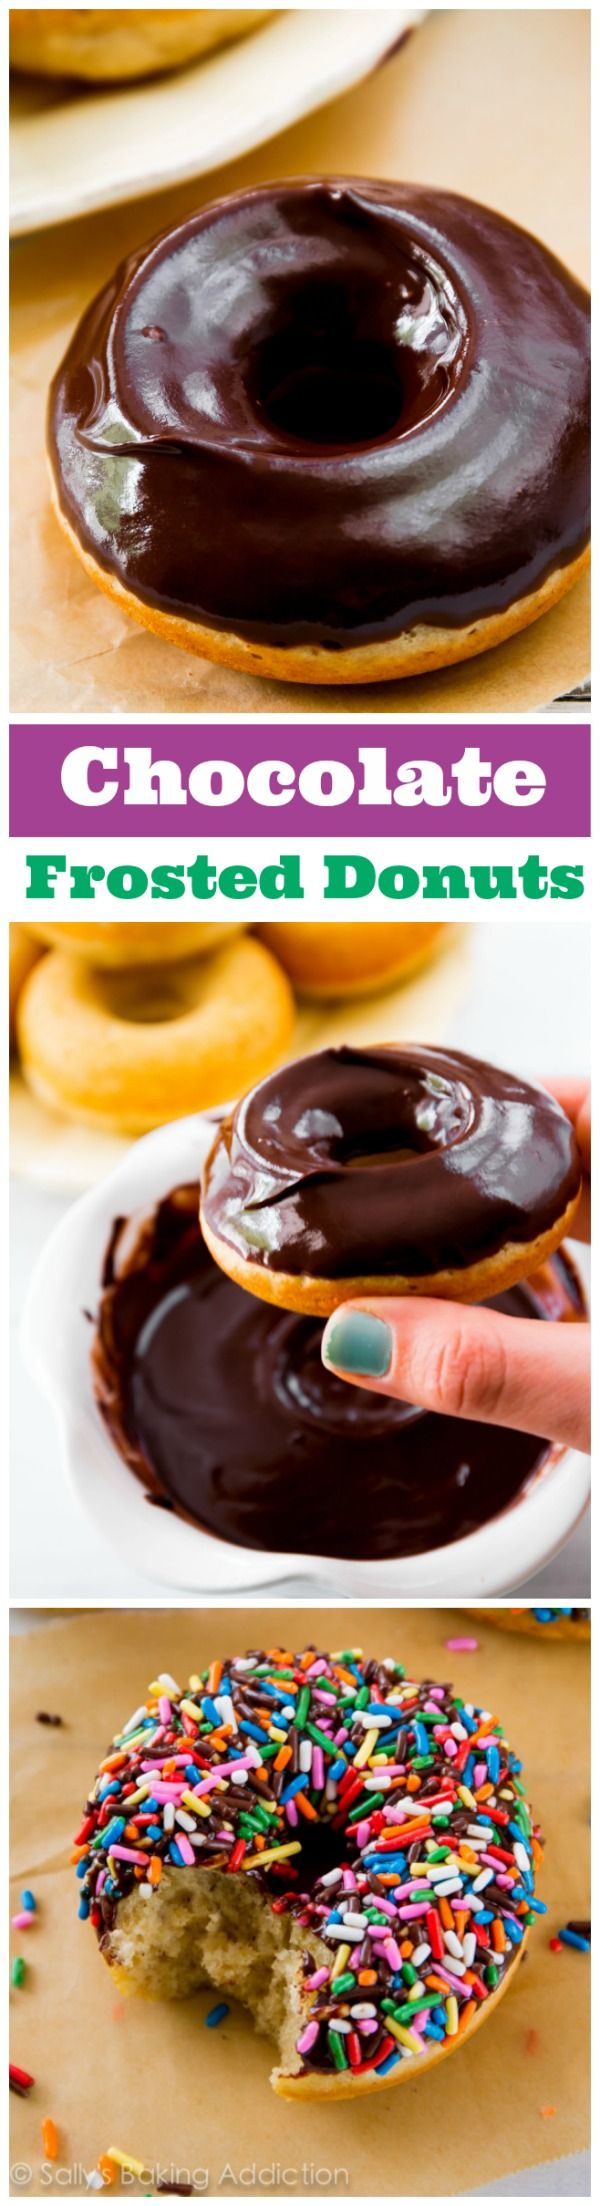 These Chocolate Frosted Donuts are baked, not fried - and they are SO easy to make! One of my best recipes.